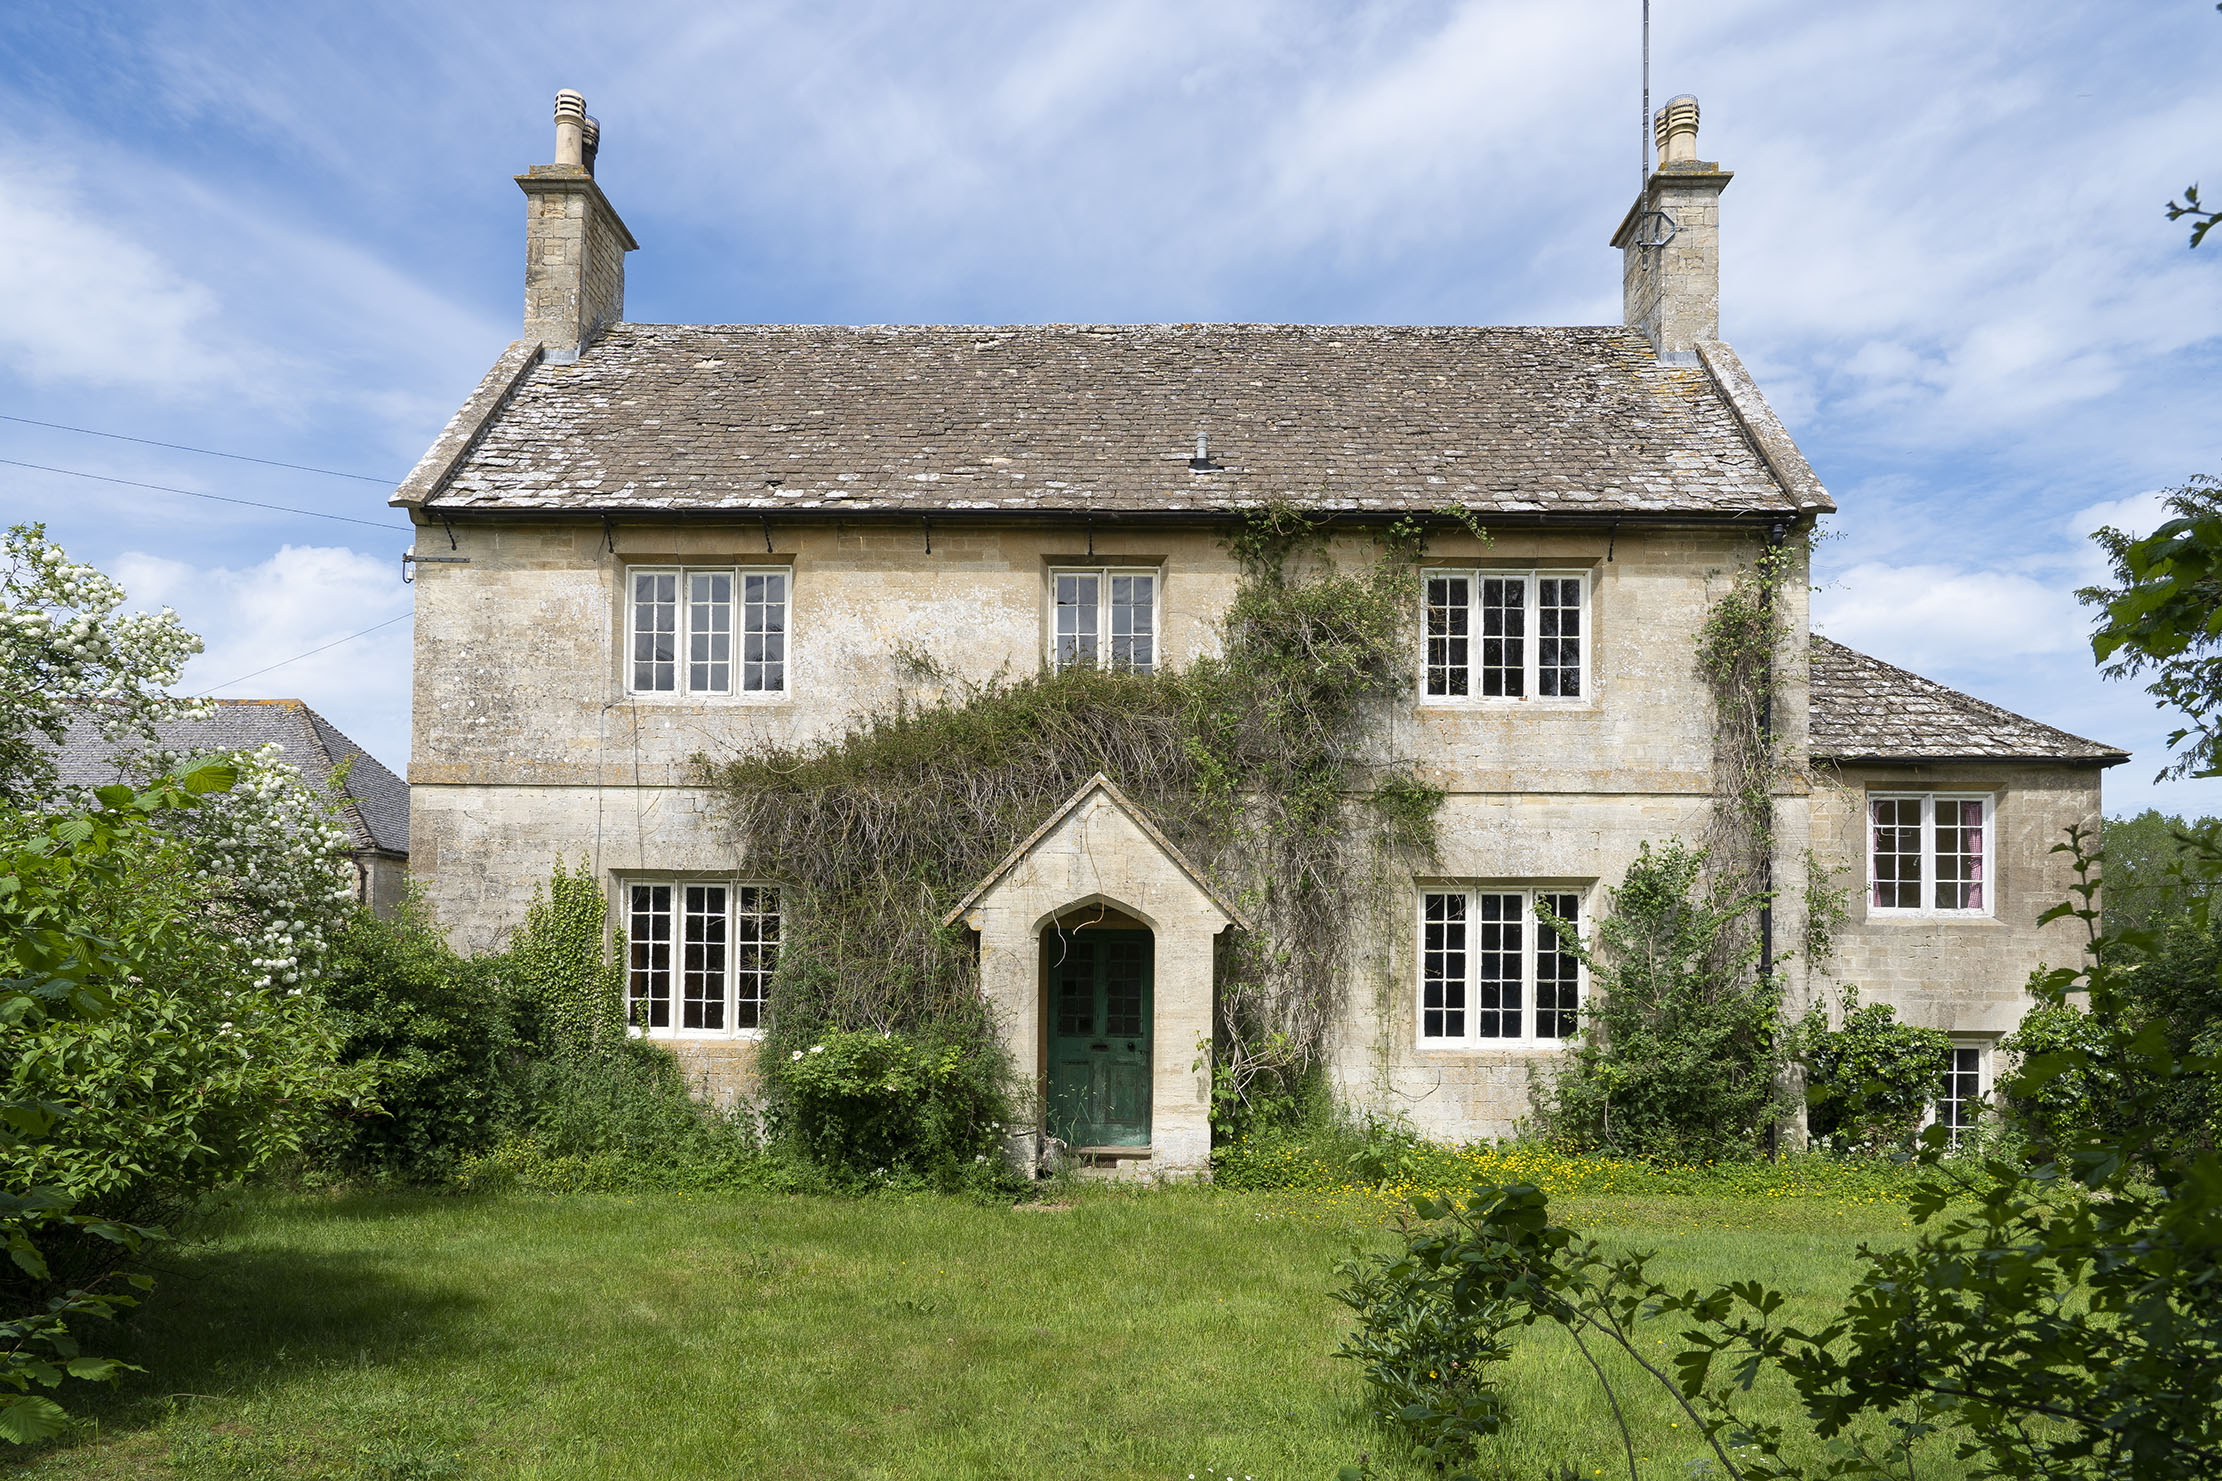 Five beautiful farms with farmhouses full of potential for sale across Britain, starting from £720,000